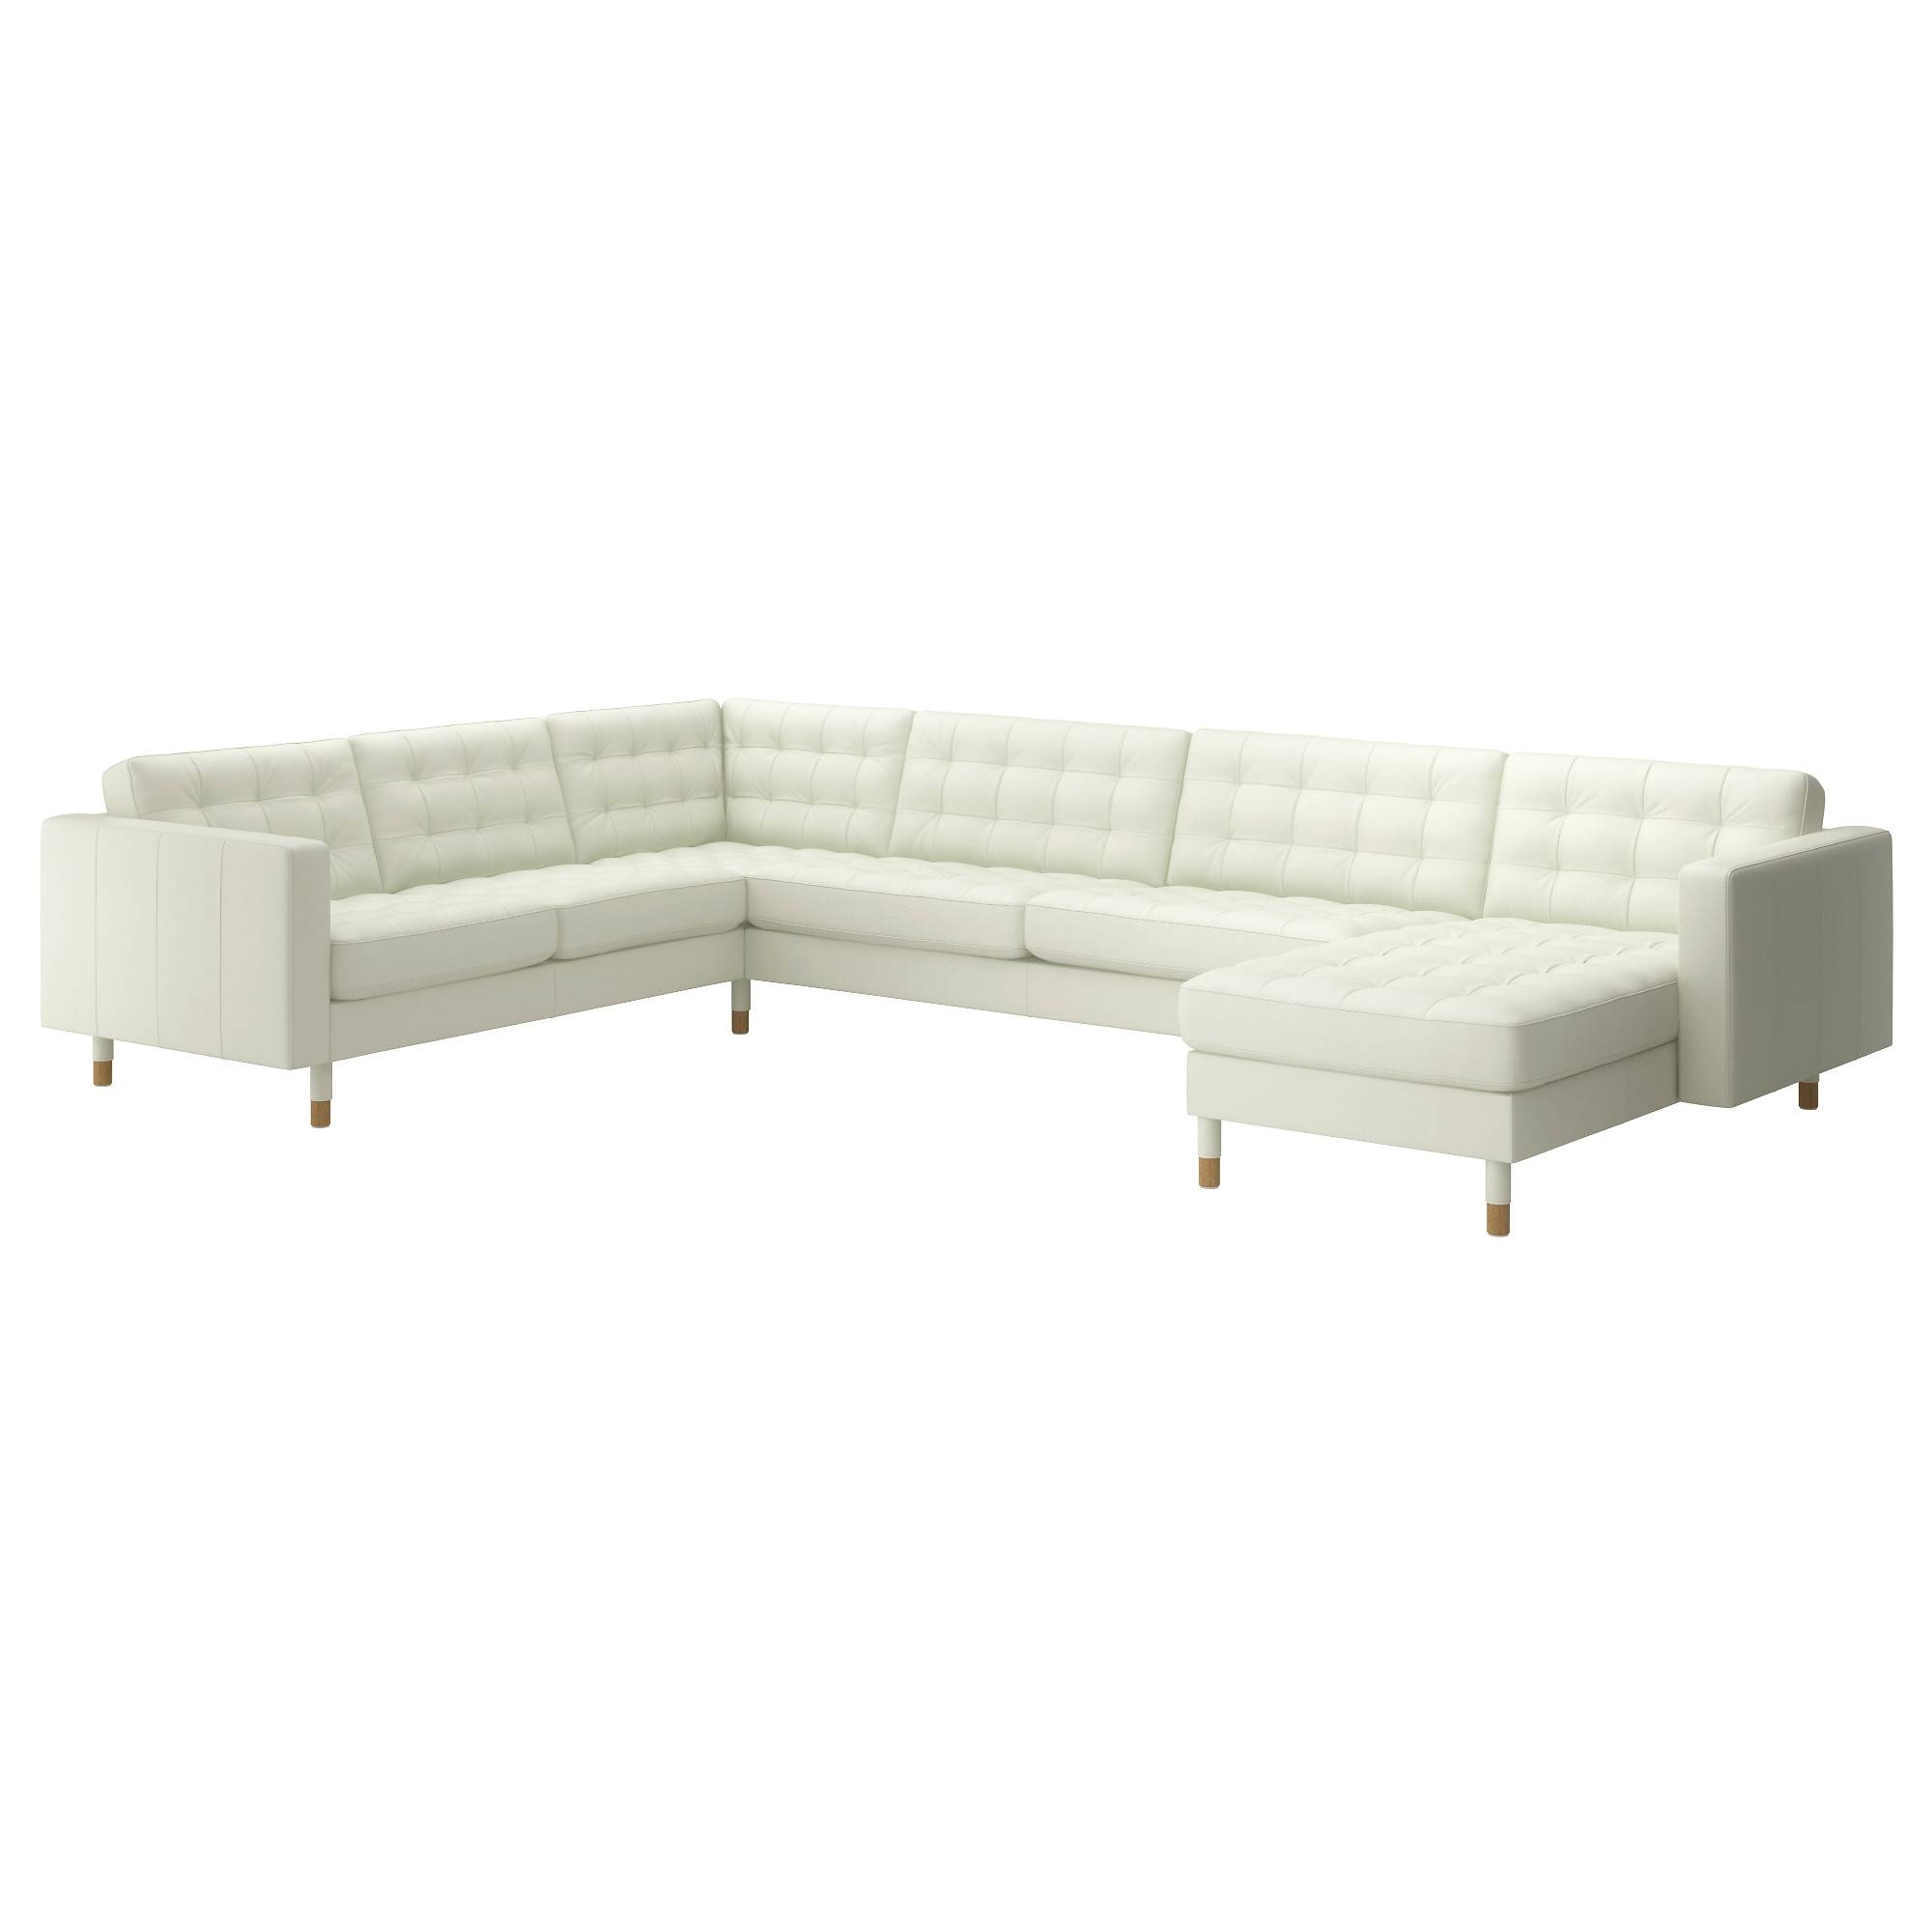 Sectional Sofas & Couches - Ikea regarding Mod Sofas (Image 14 of 30)